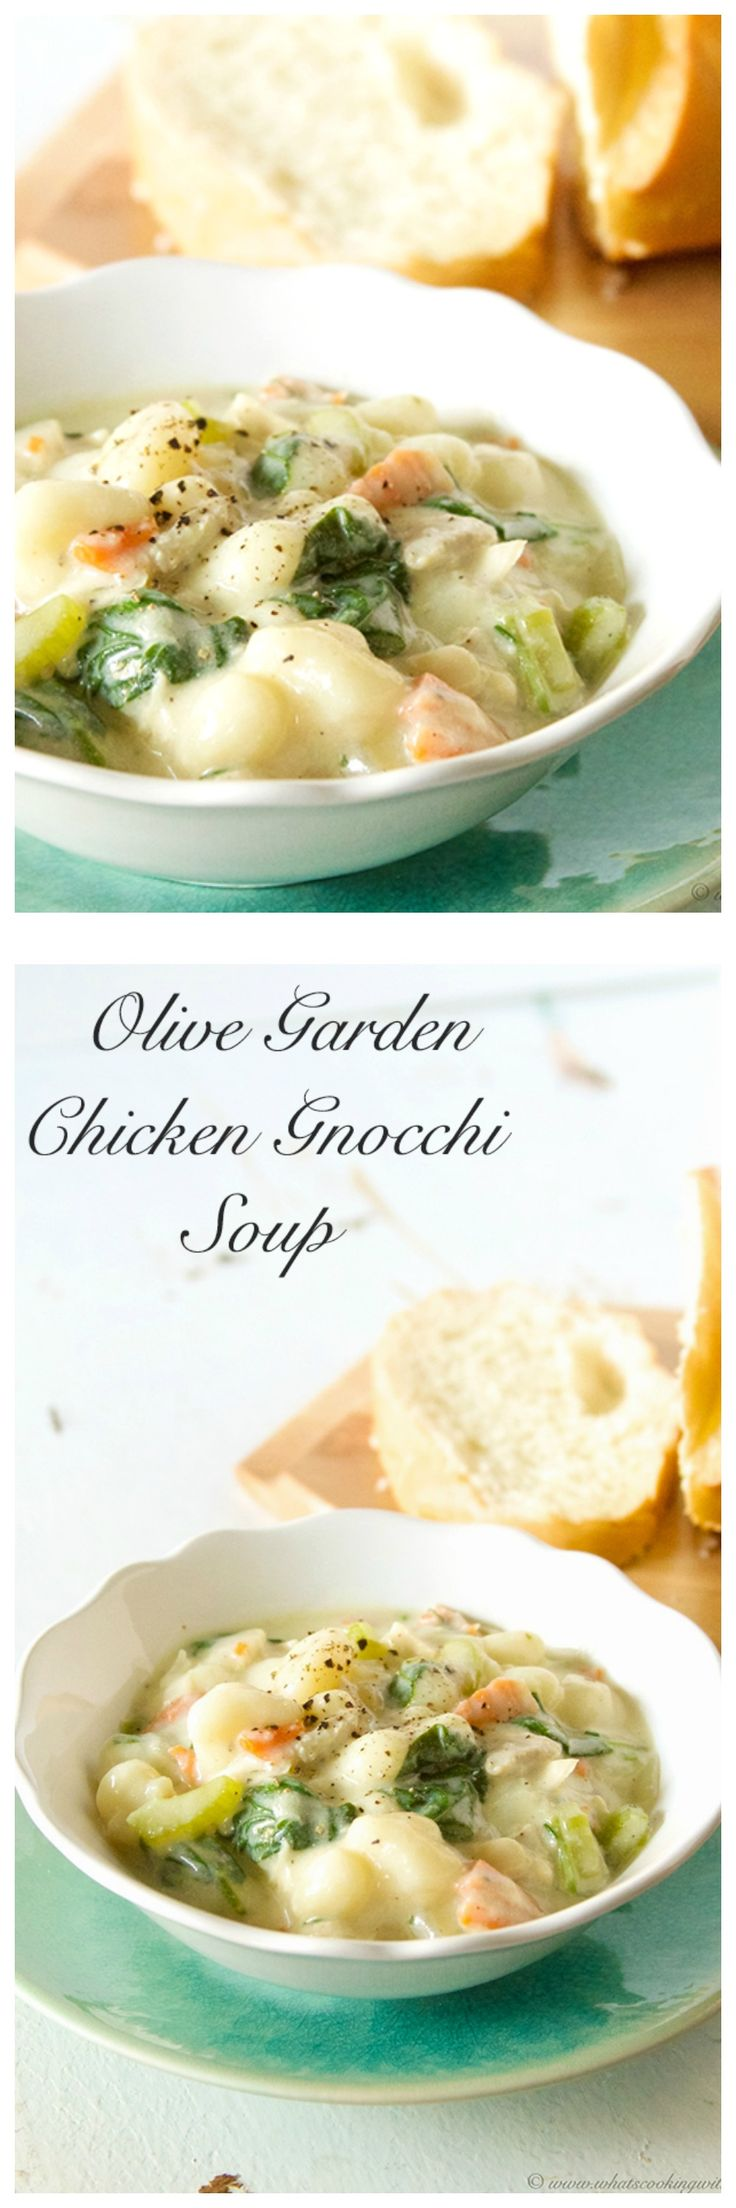 25 Best Ideas About Chicken Garden On Pinterest Olive Garden Pasta Olive Garden Recipes And